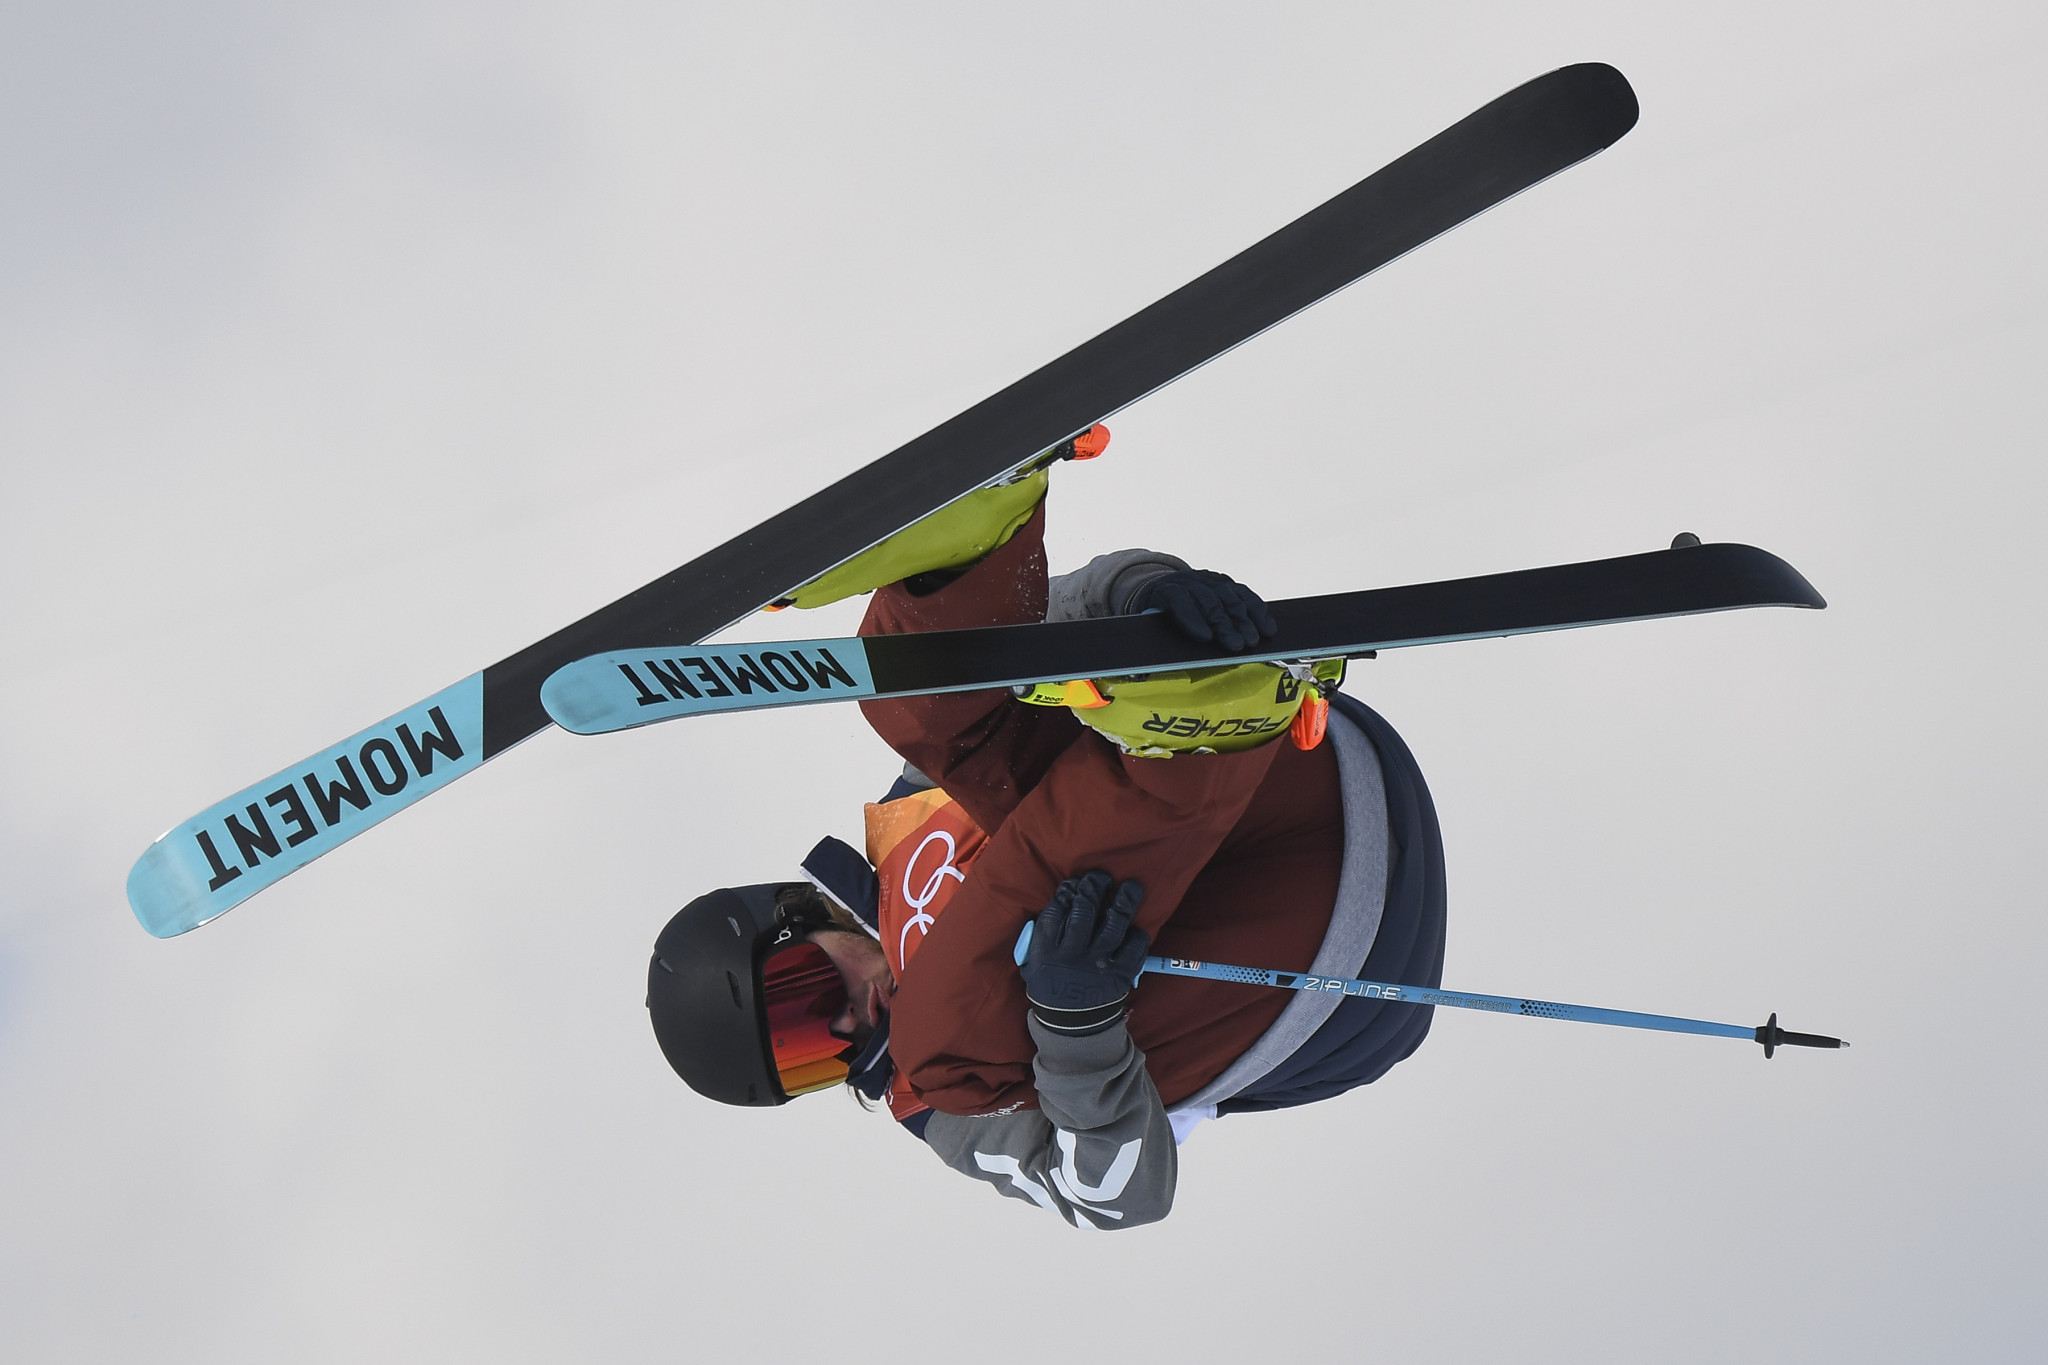 Olympic champion Wise leads home charge with halfpipe action set to get underway on FIS Freestyle Skiing World Cup tour